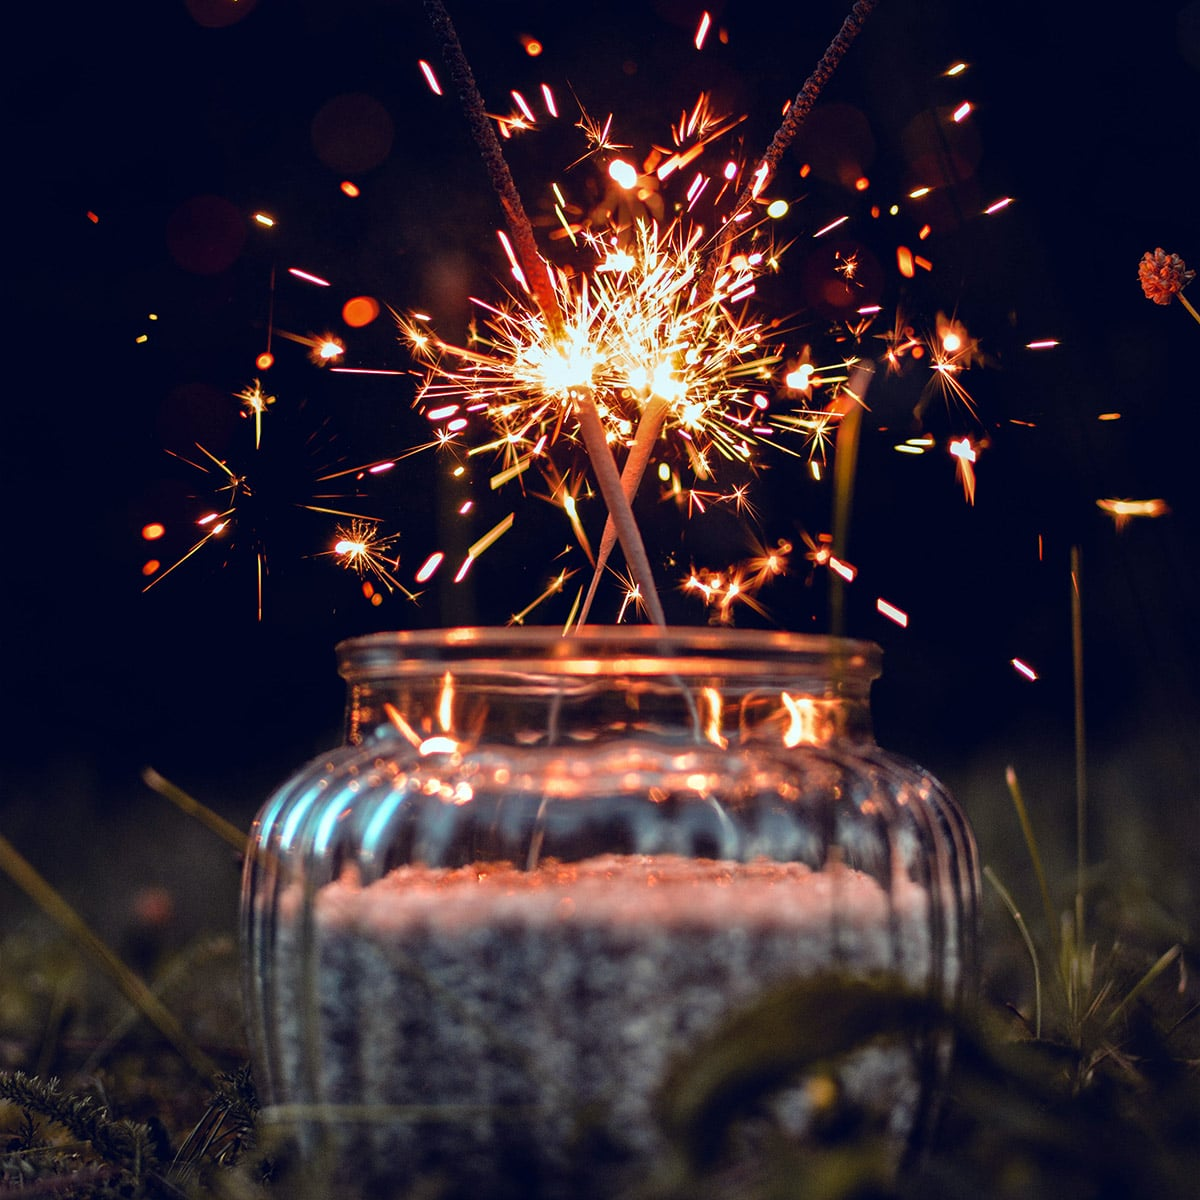 Image of a Sparkler Centerpiece Sitting in the Grass